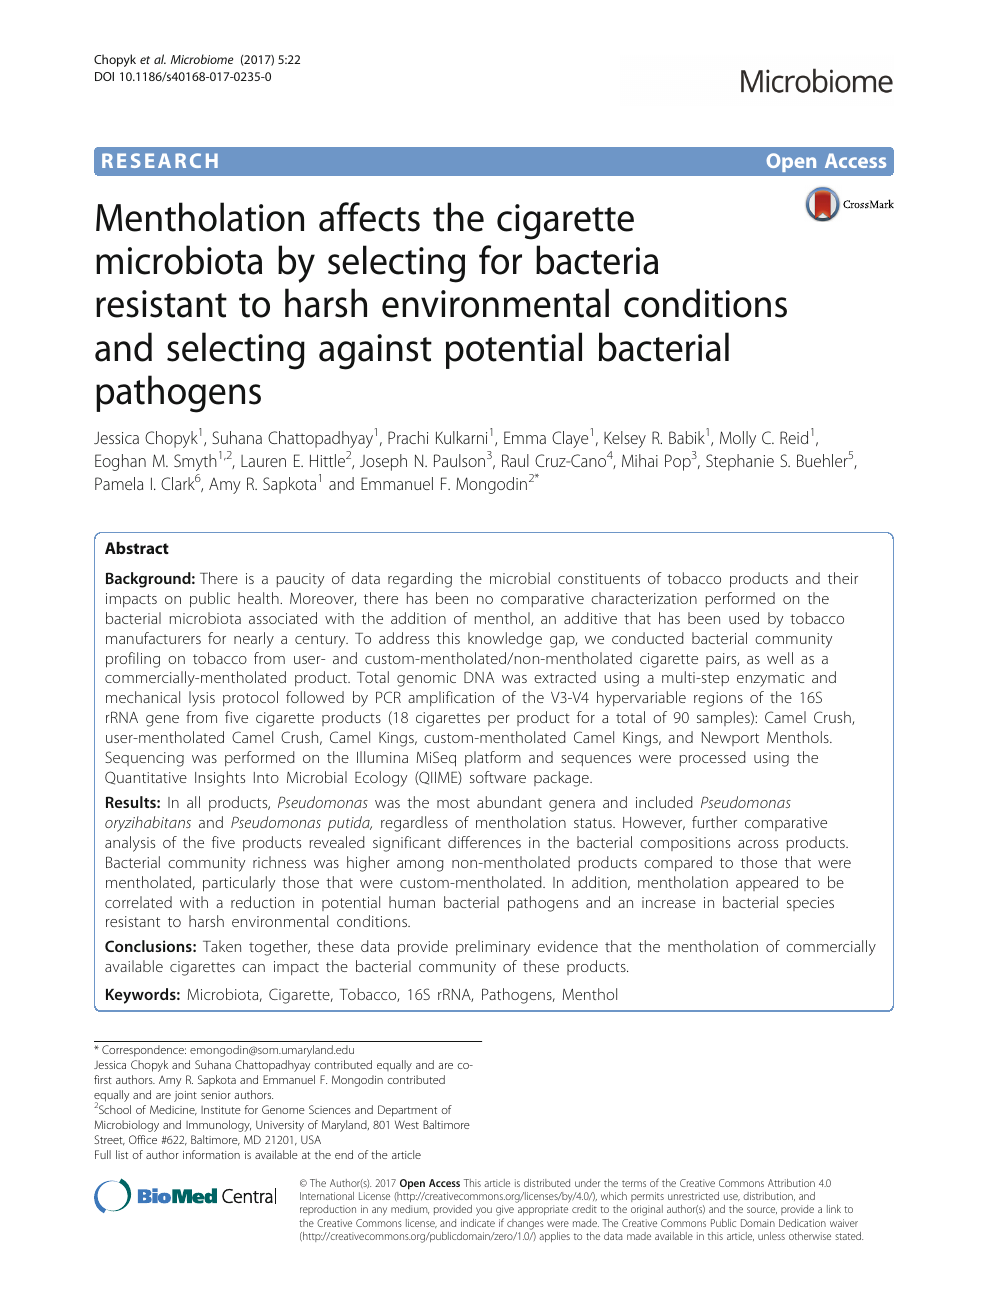 Mentholation affects the cigarette microbiota by selecting